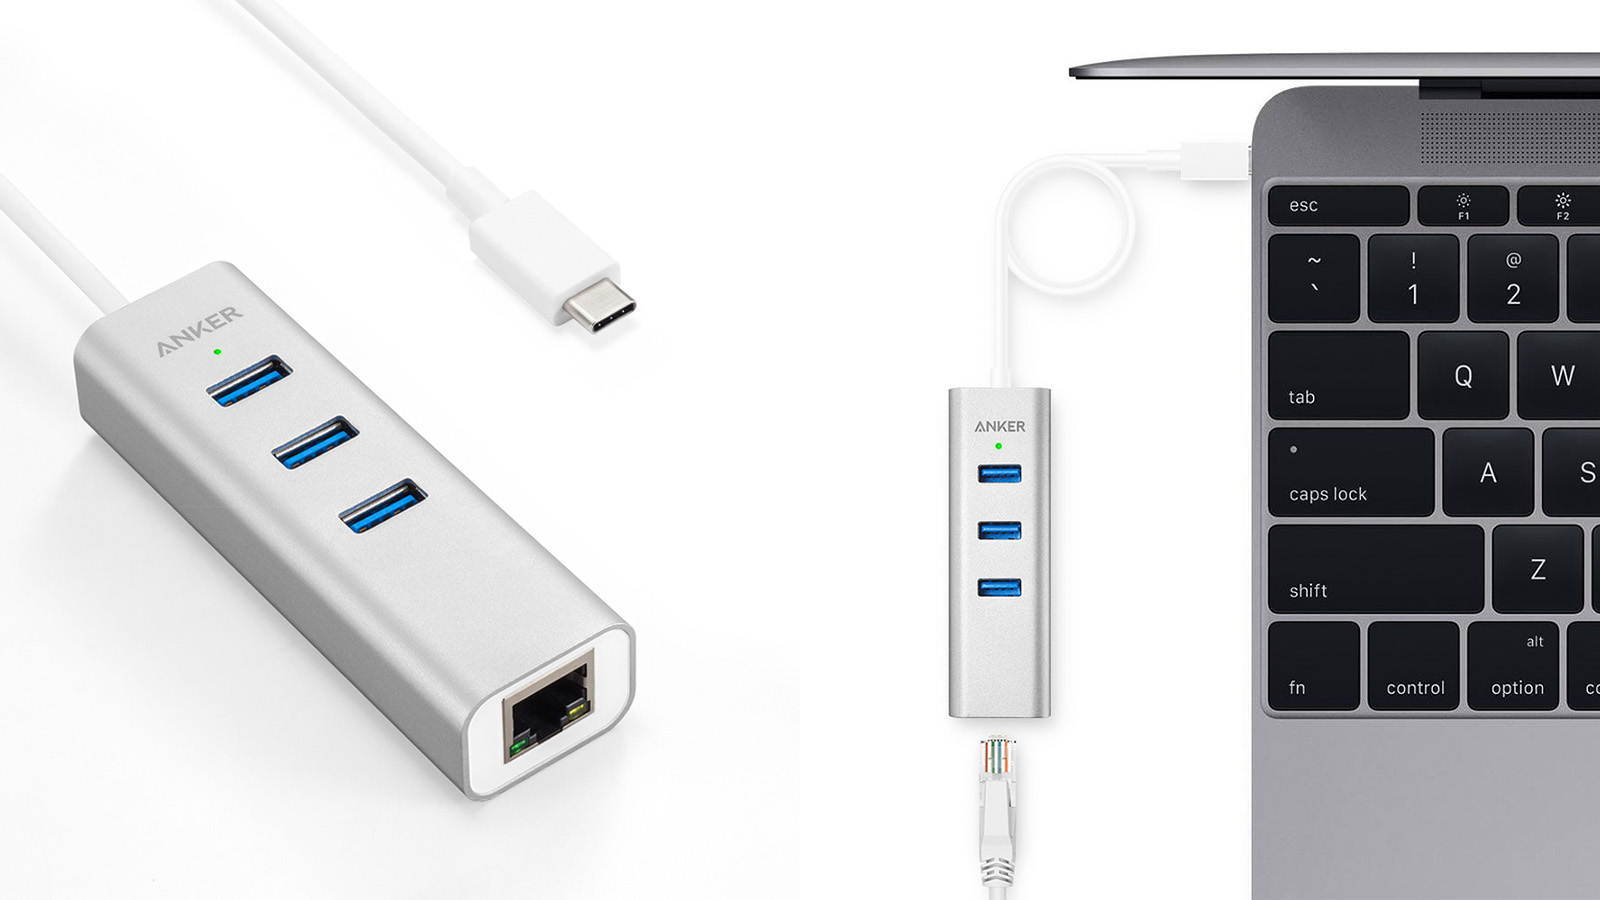 Anker USB-C to 3-Port USB 3.0 Hub with Ethernet Adapter